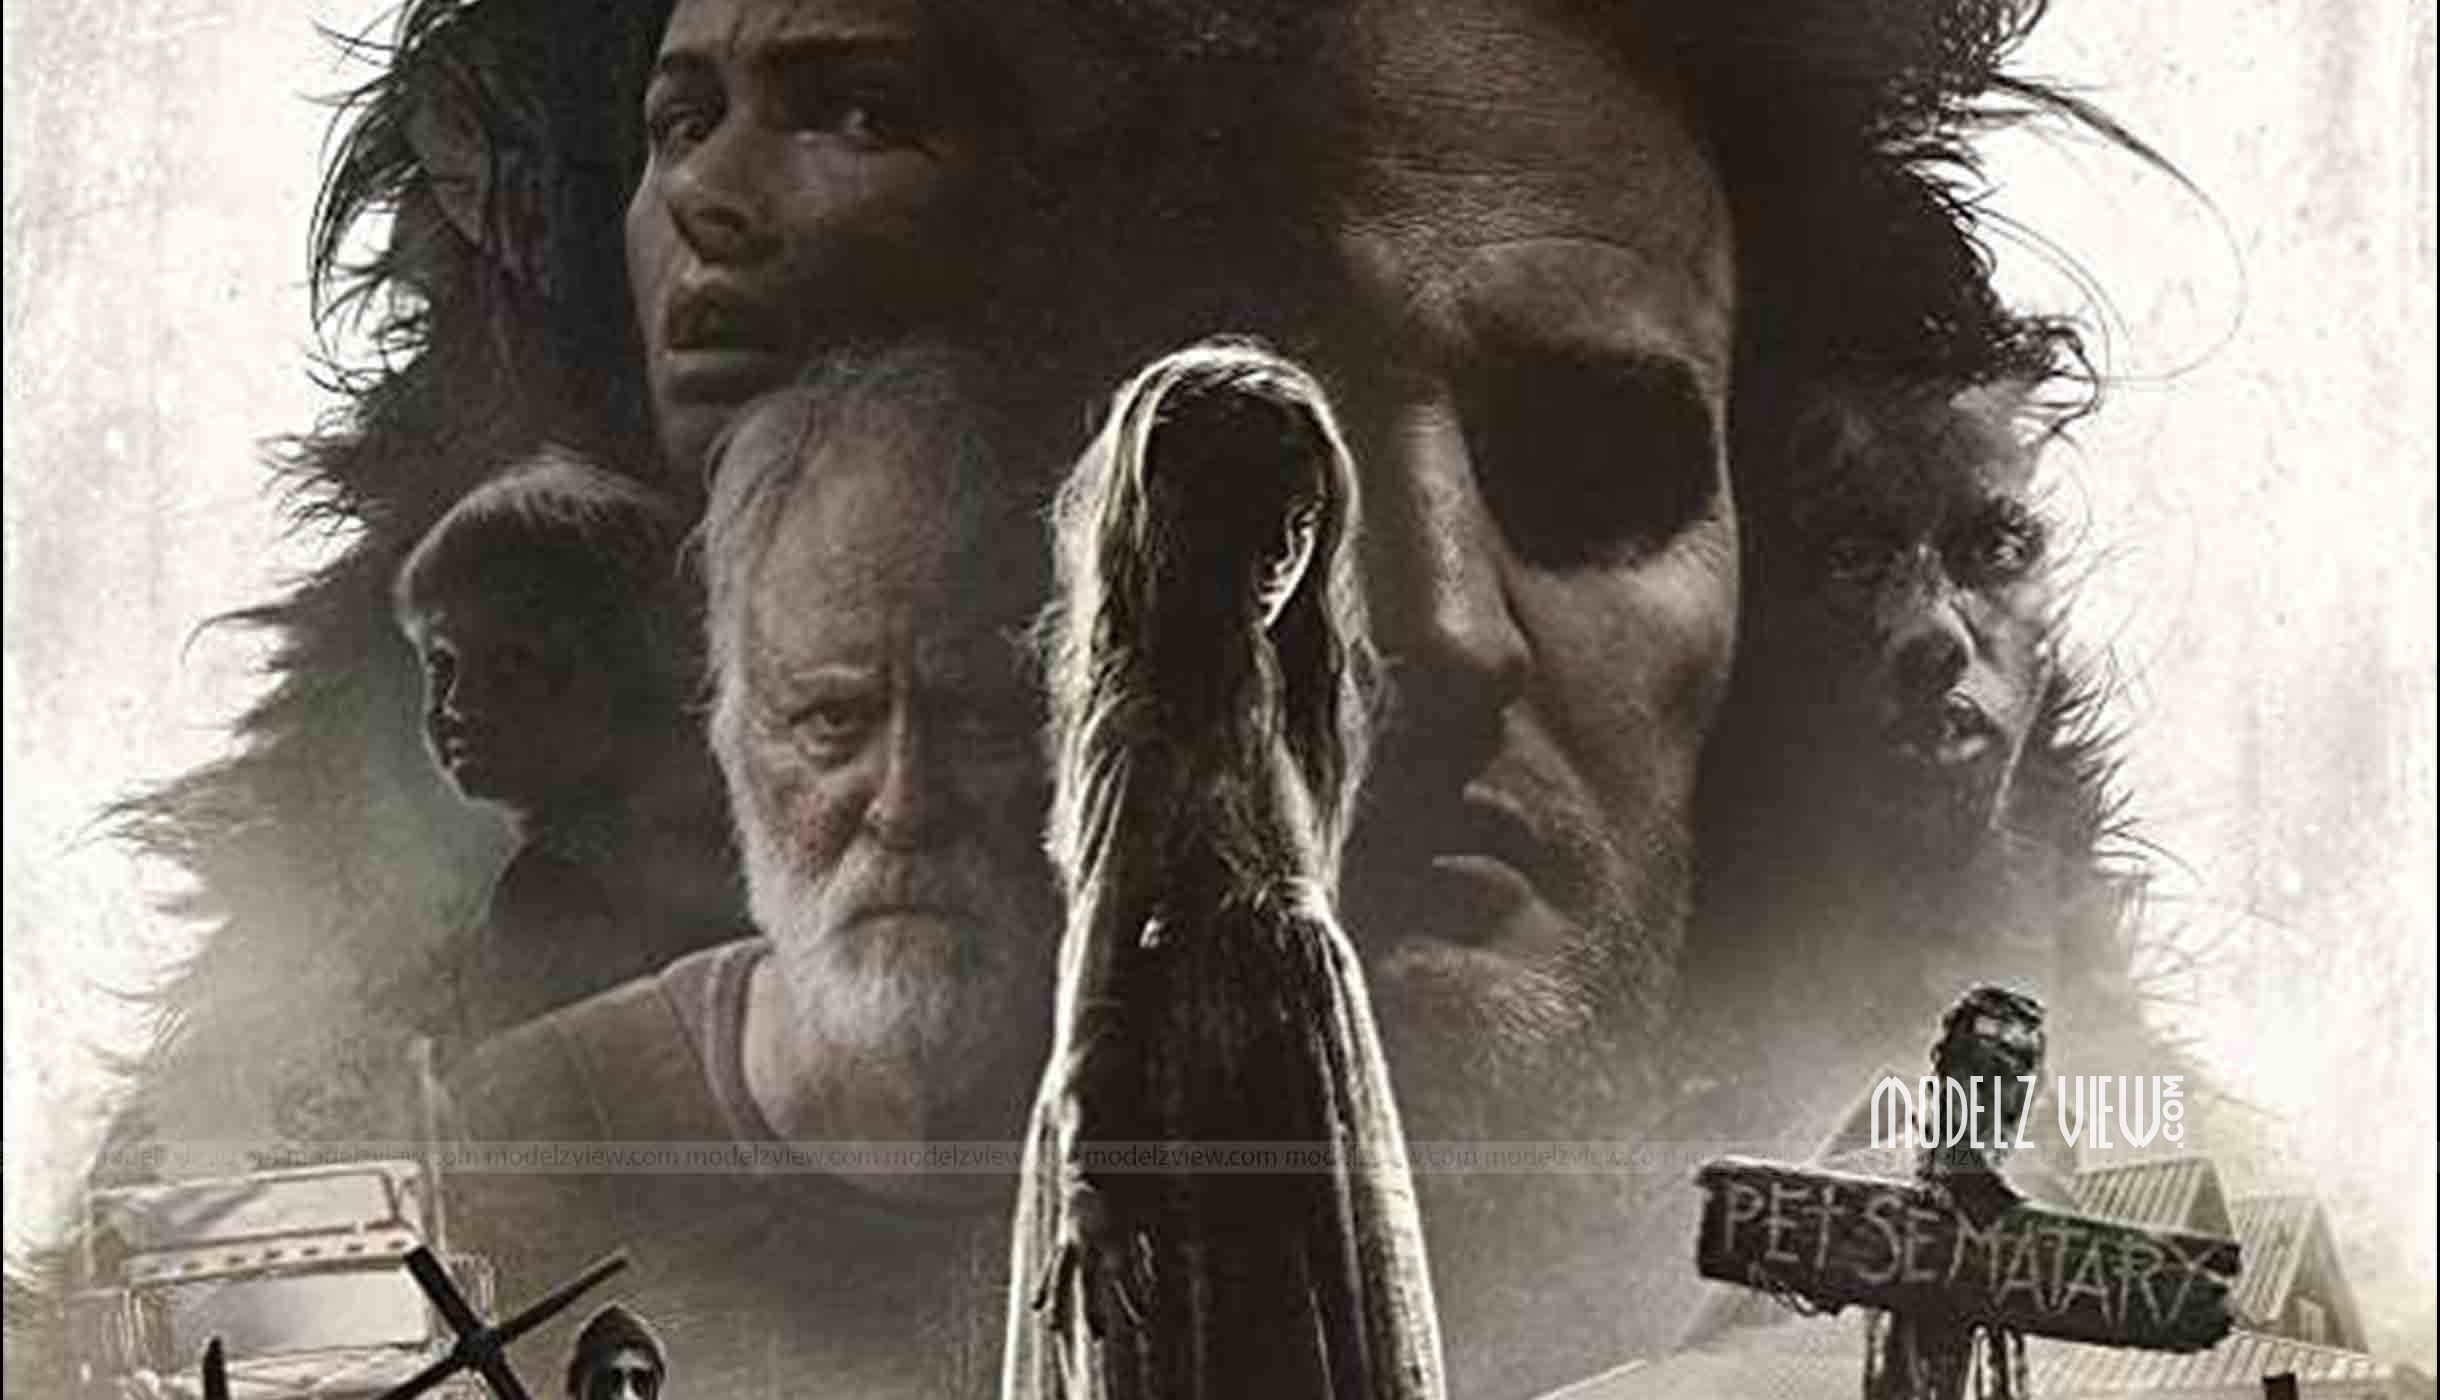 'Pet Sematary': release date, trailer, cast, and everything we know so far